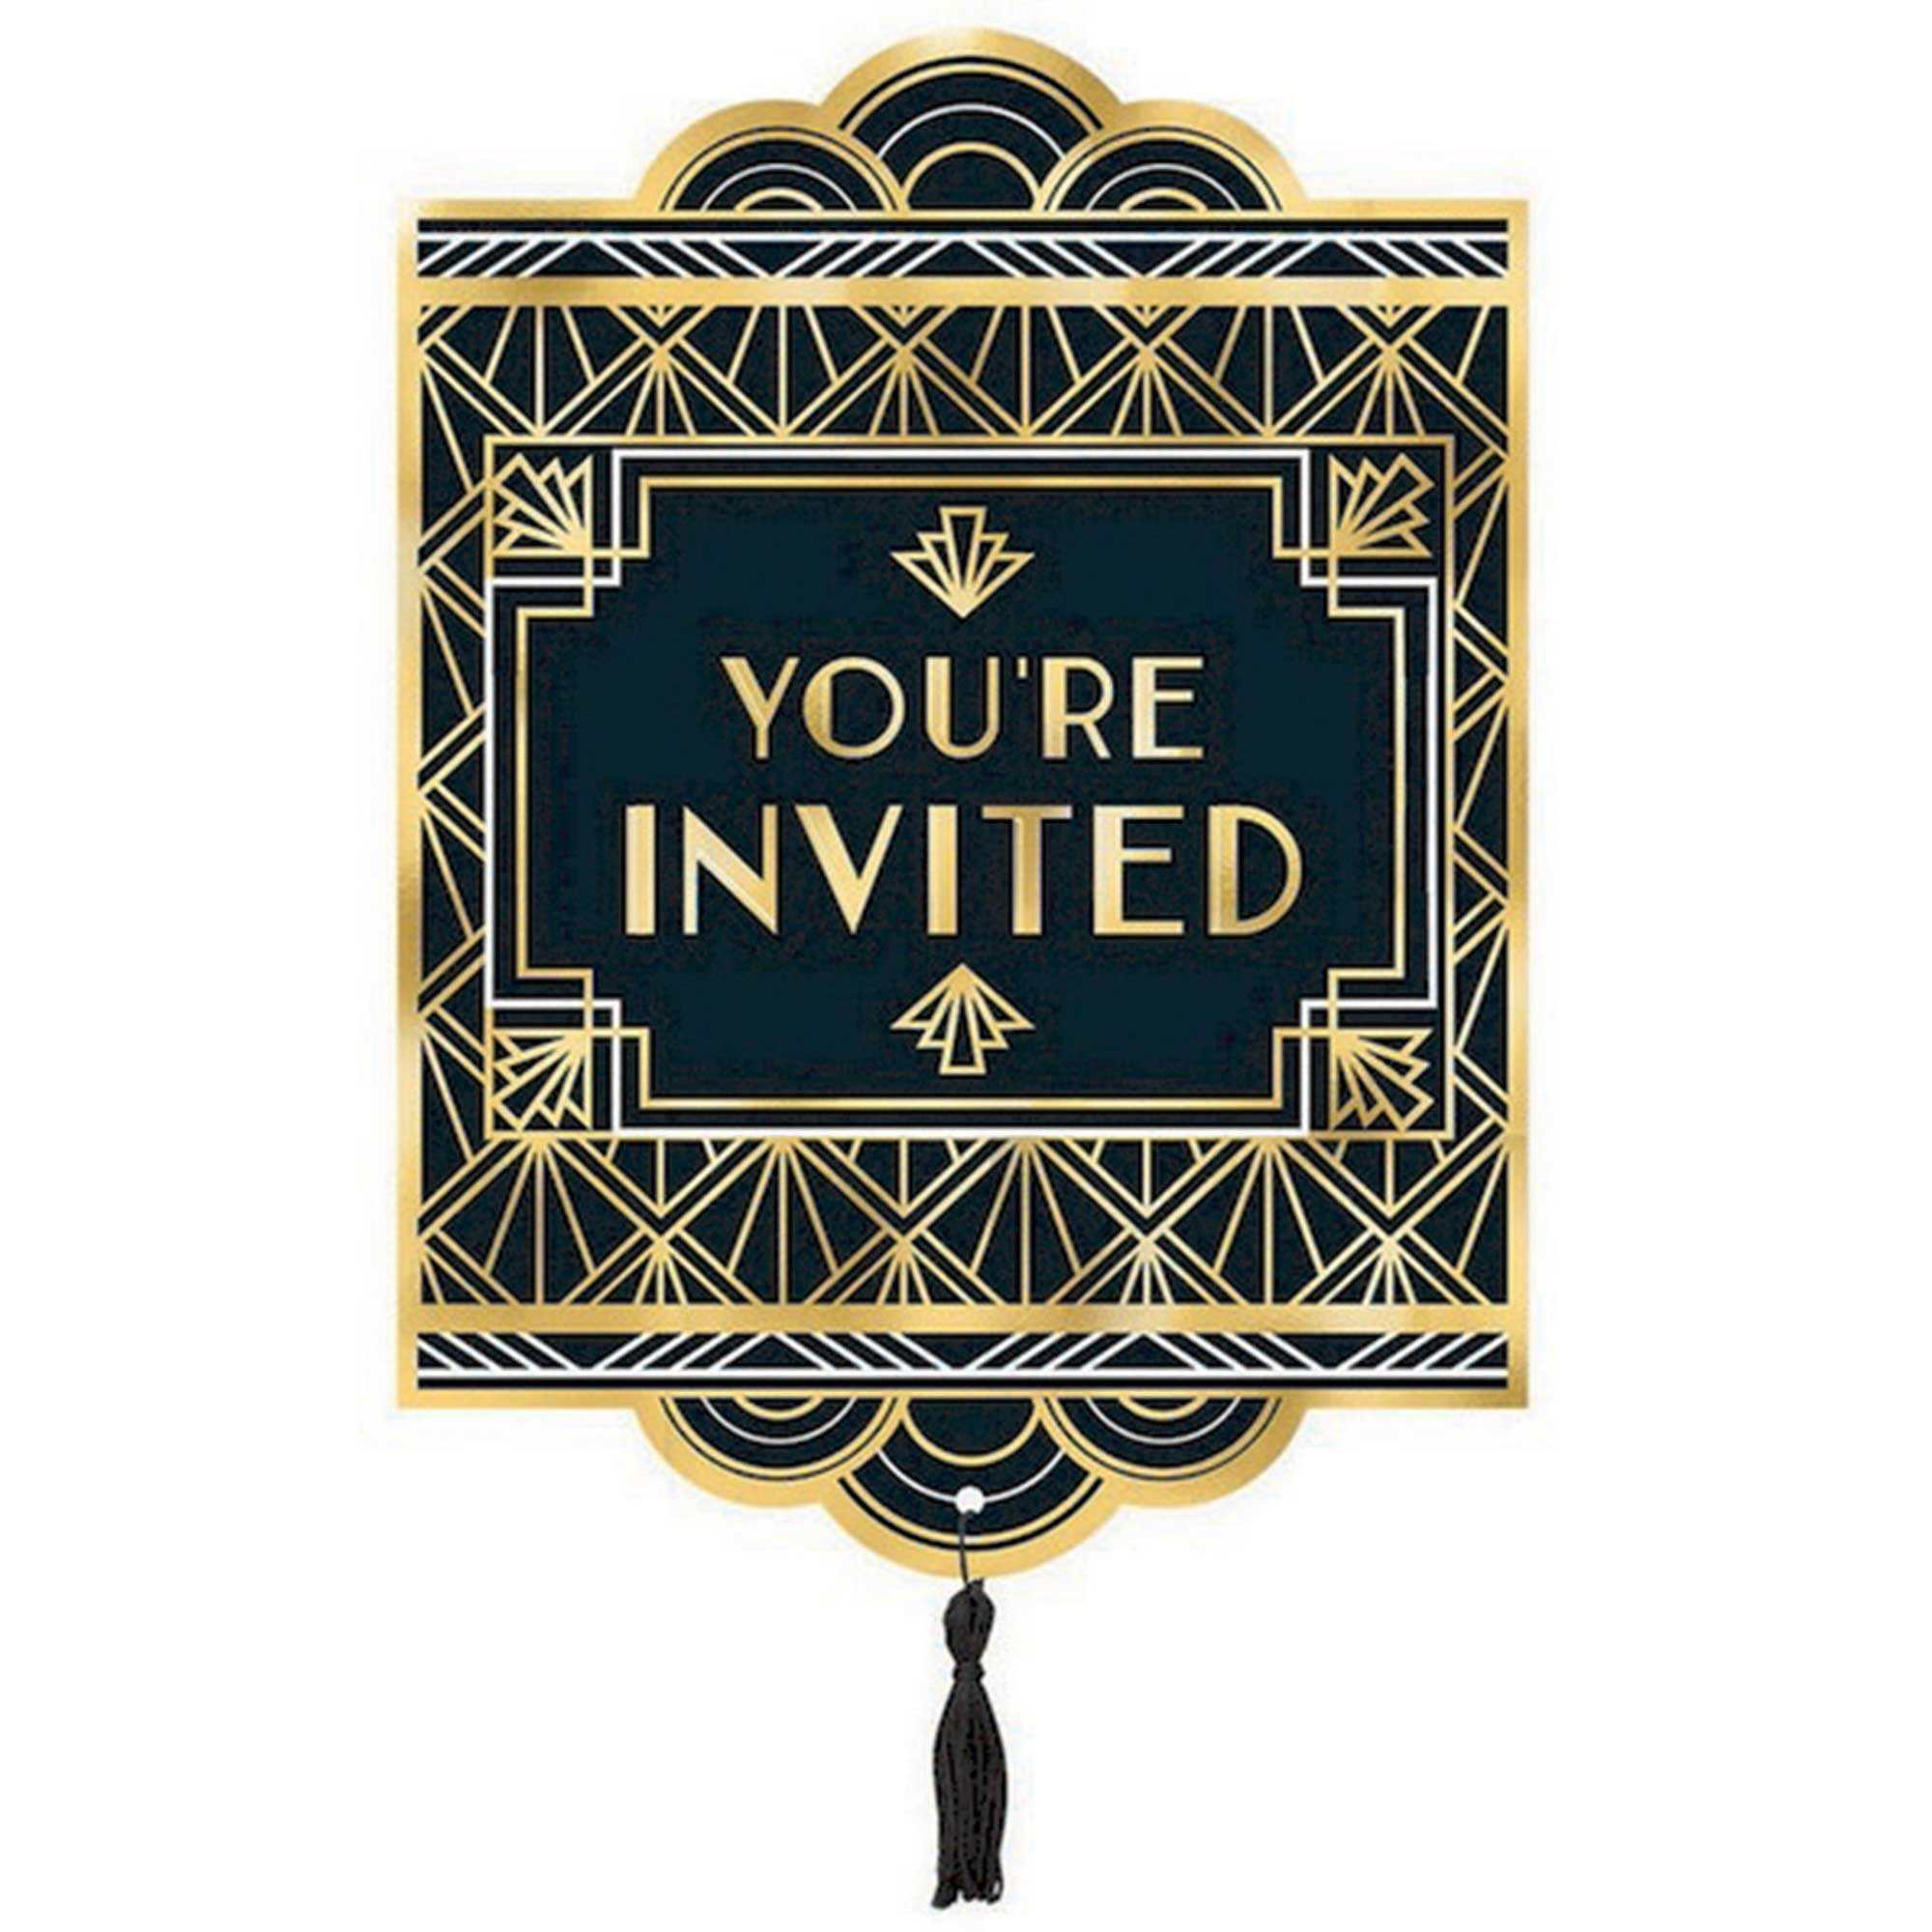 Glitz & Glam Jumbo Deluxe Invitations Foil Hot Stamped